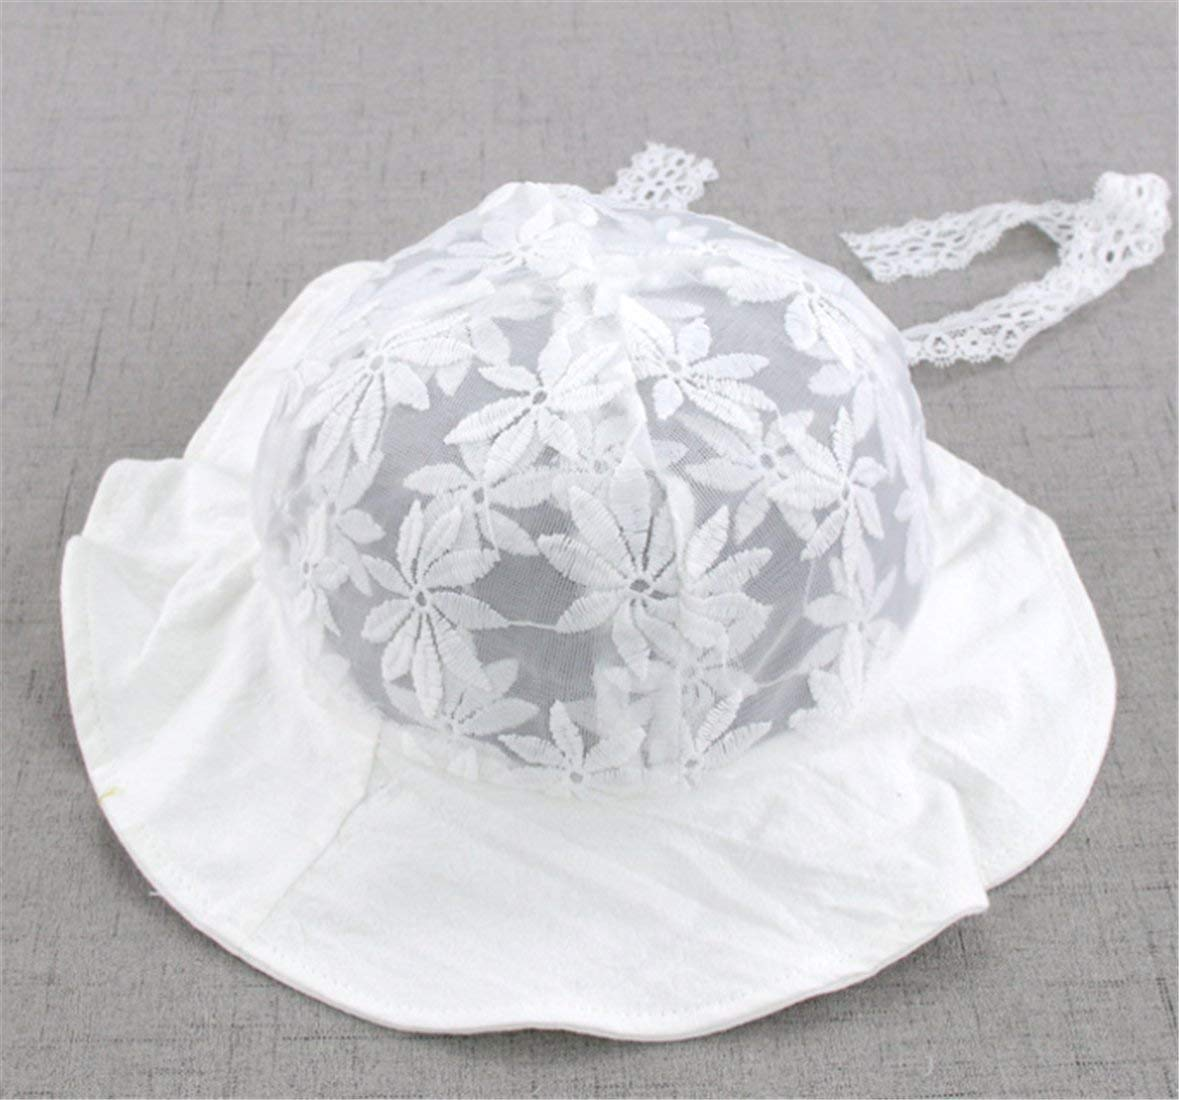 d4aa27f5 Get Quotations · Yeying123 Baby Sun Protection Hat Lace Flower Baby Sun Hat  Baby Sunshade Fisherman Hat,White